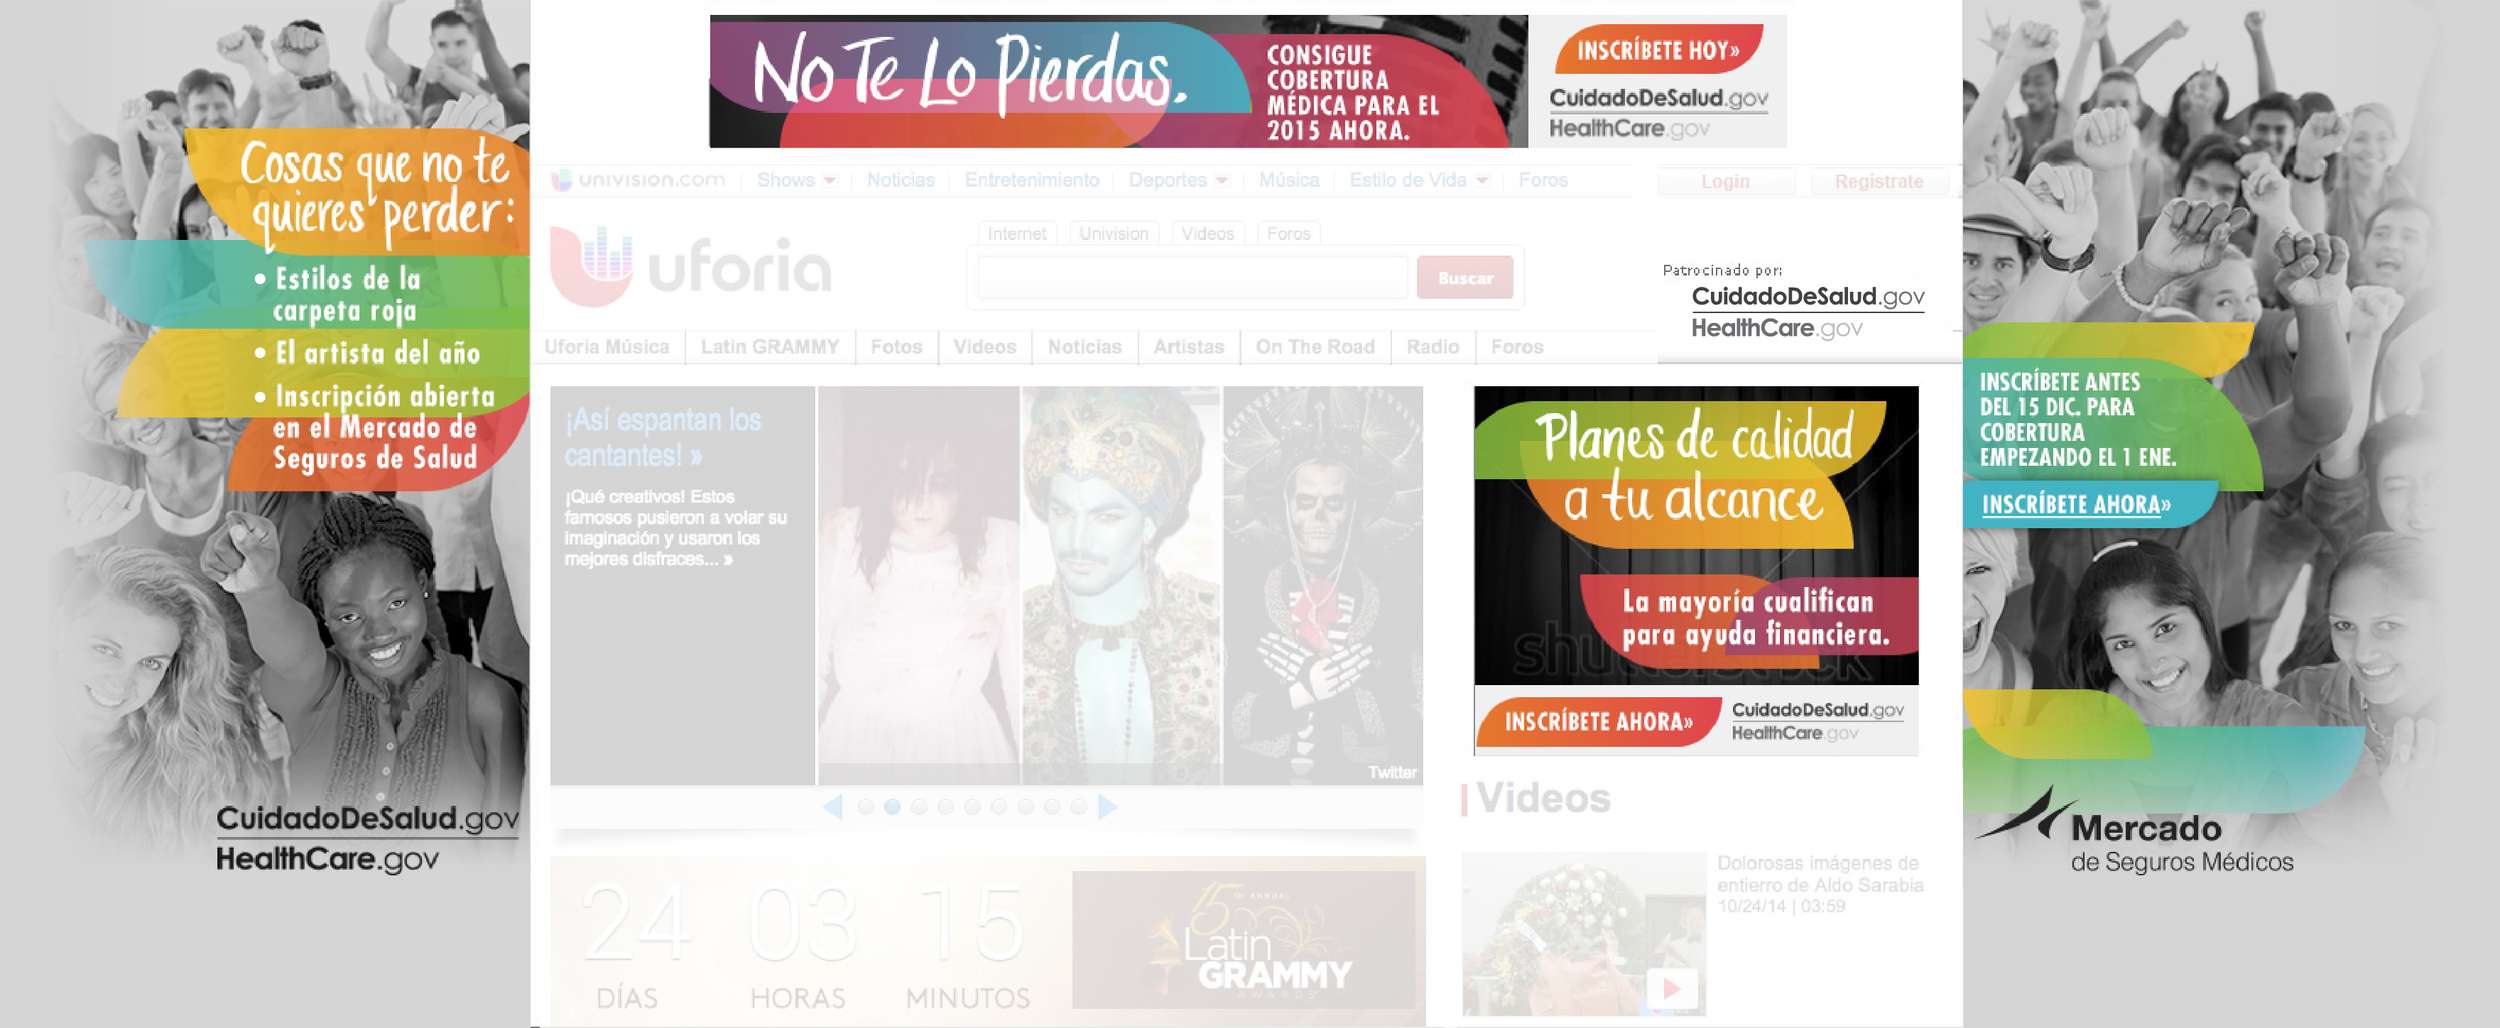 Univision page skinned for the Latin Grammys